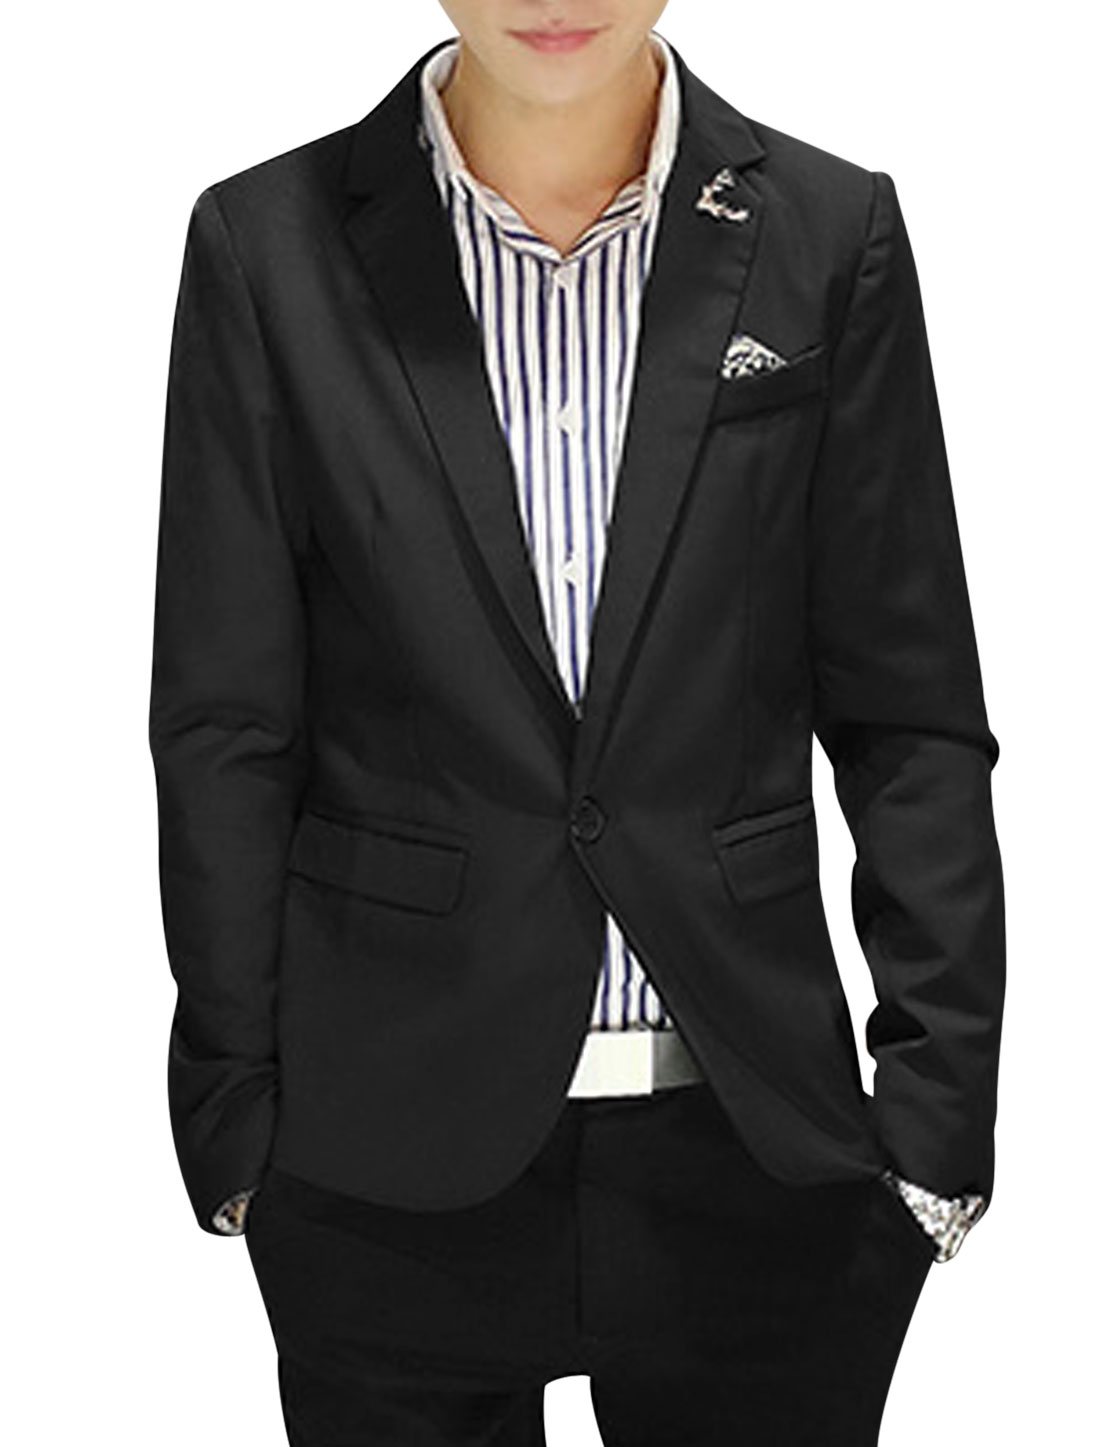 Notched Lapel Two Flap Pockets Casual Blazer for Men Black M